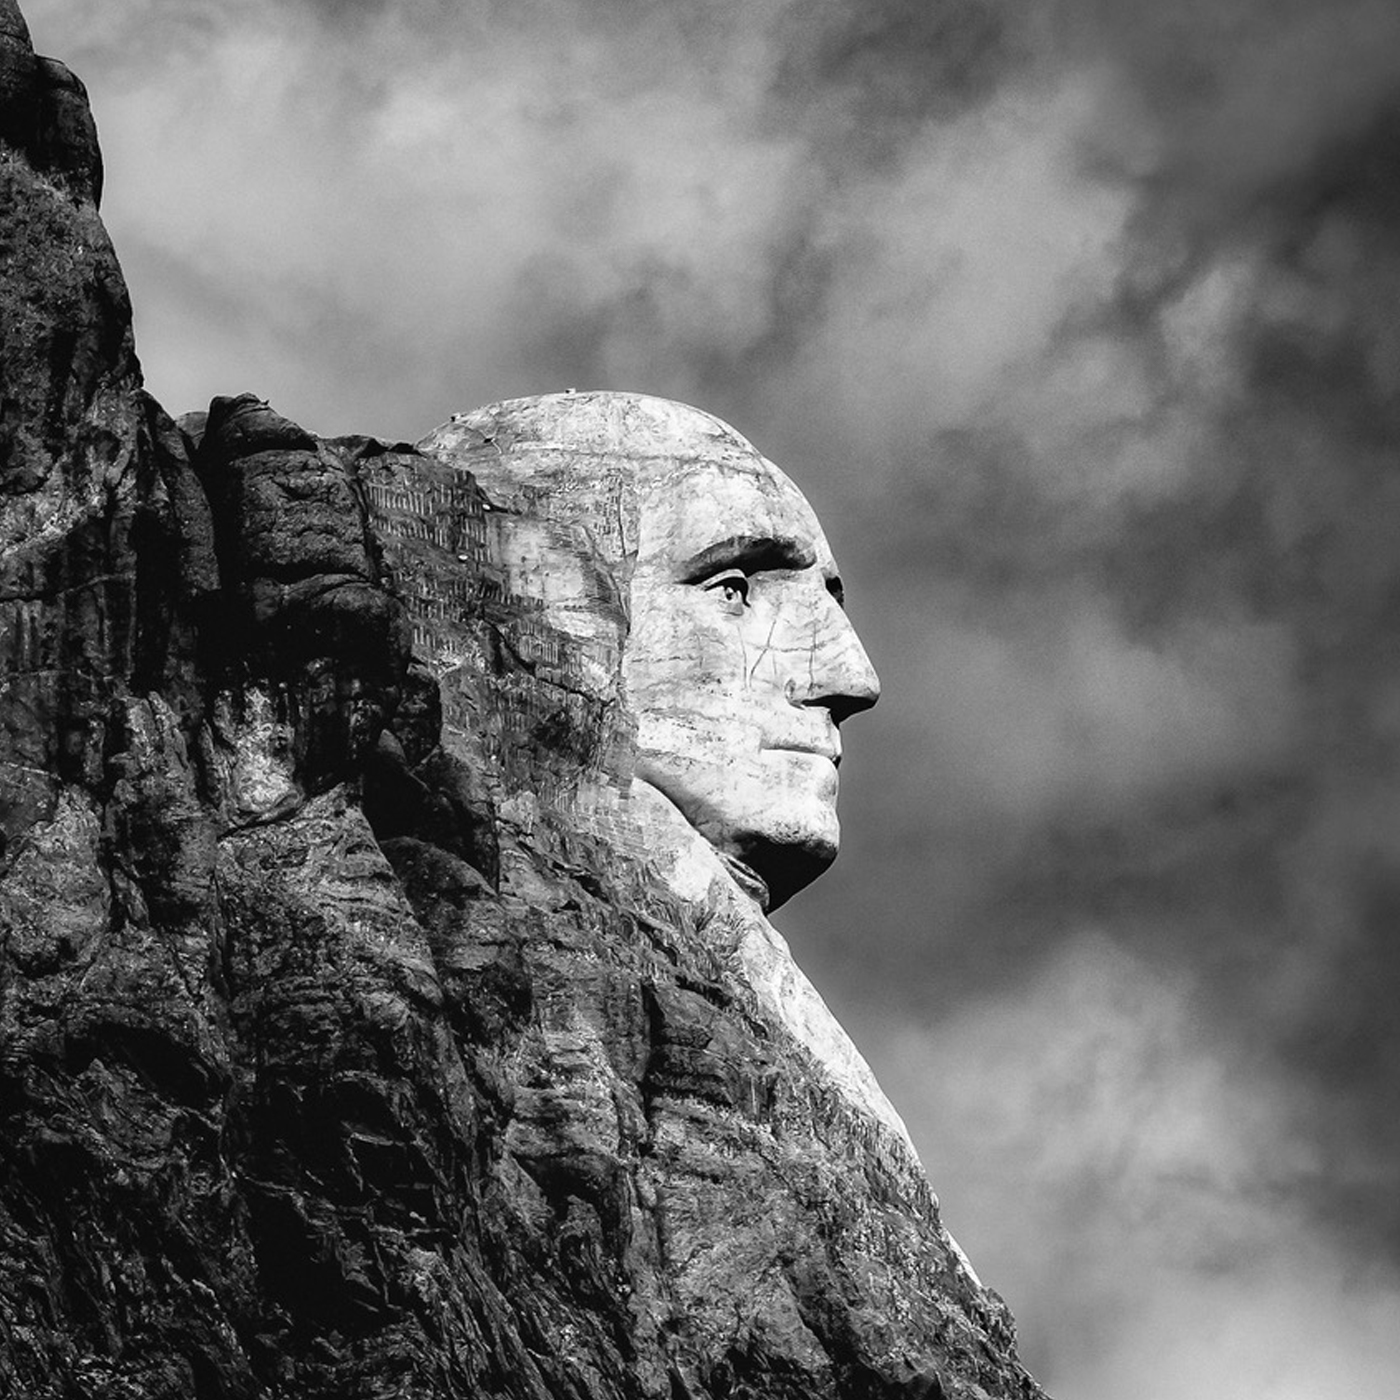 side of Mount Rushmore